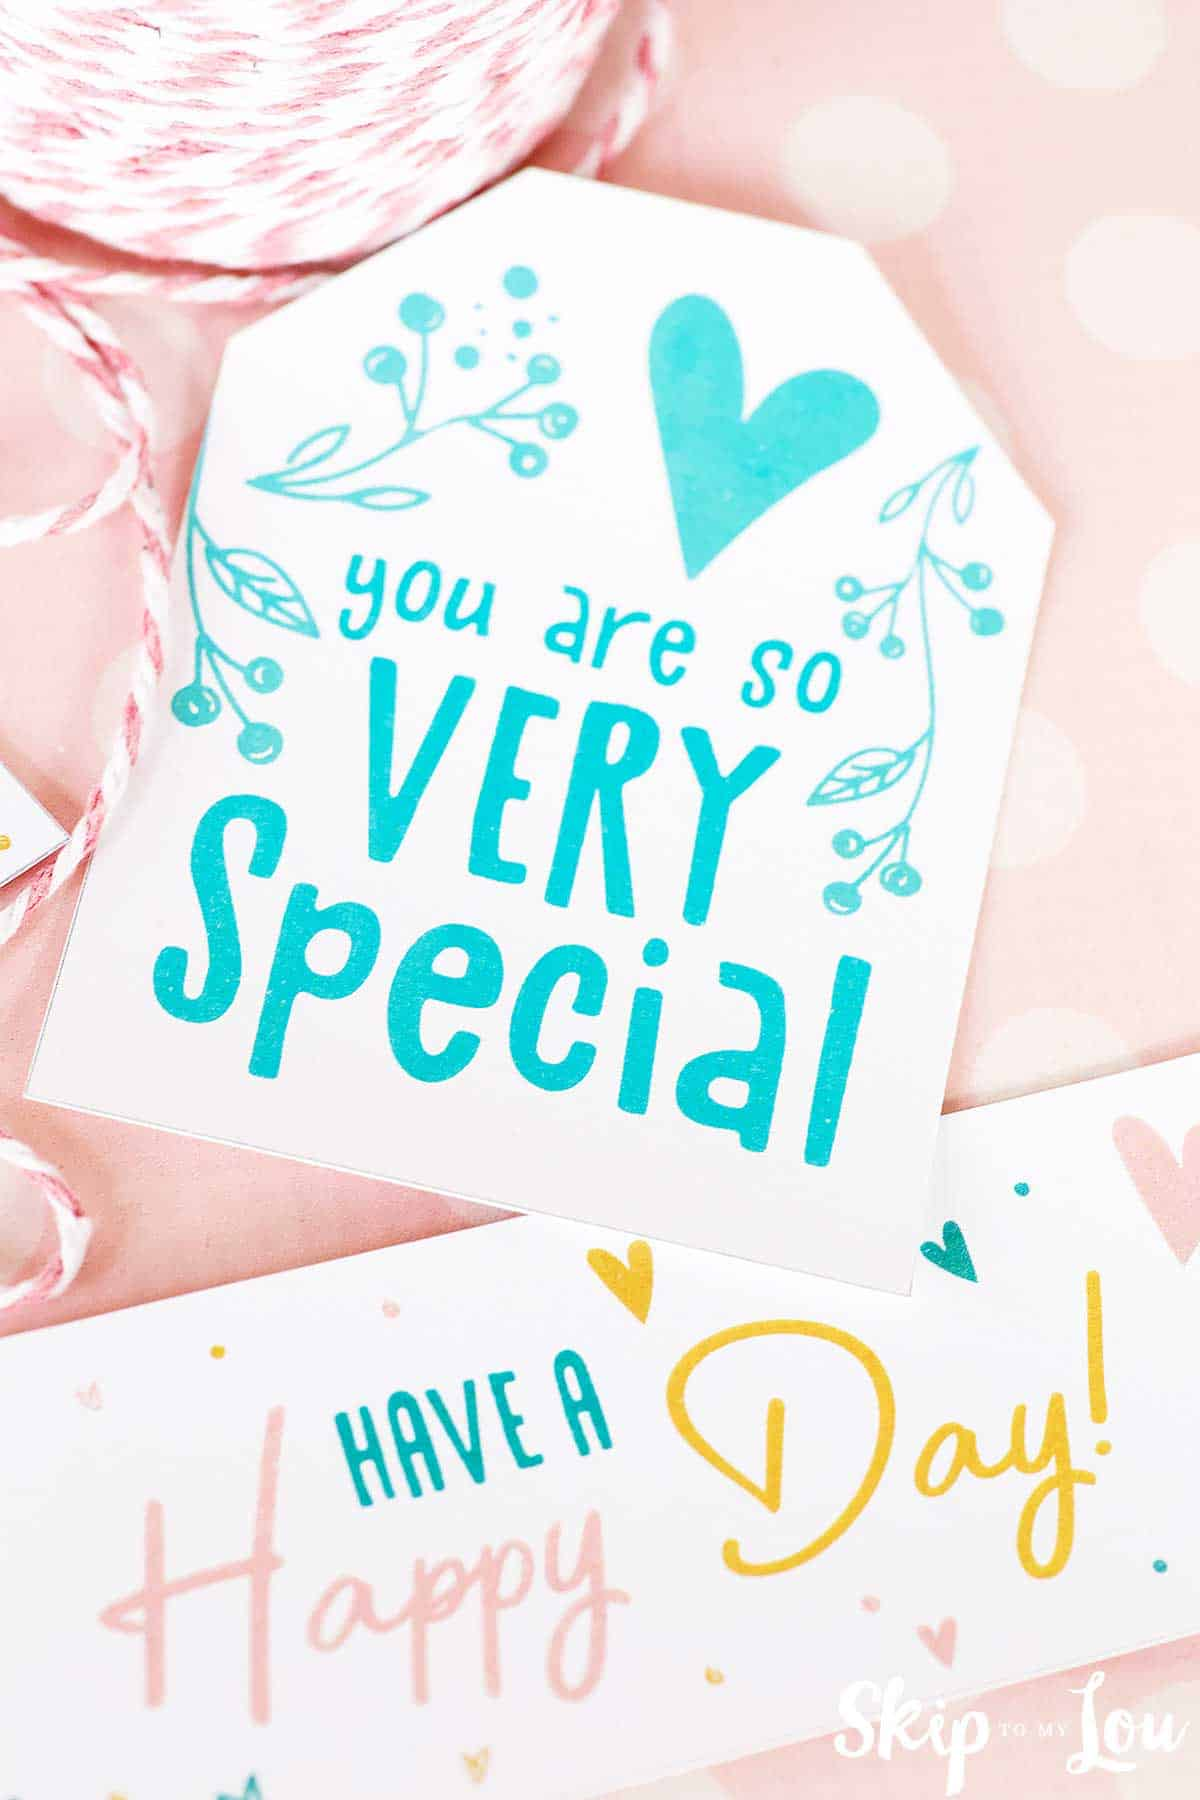 you are very special tag and have a happy day tag on pink background